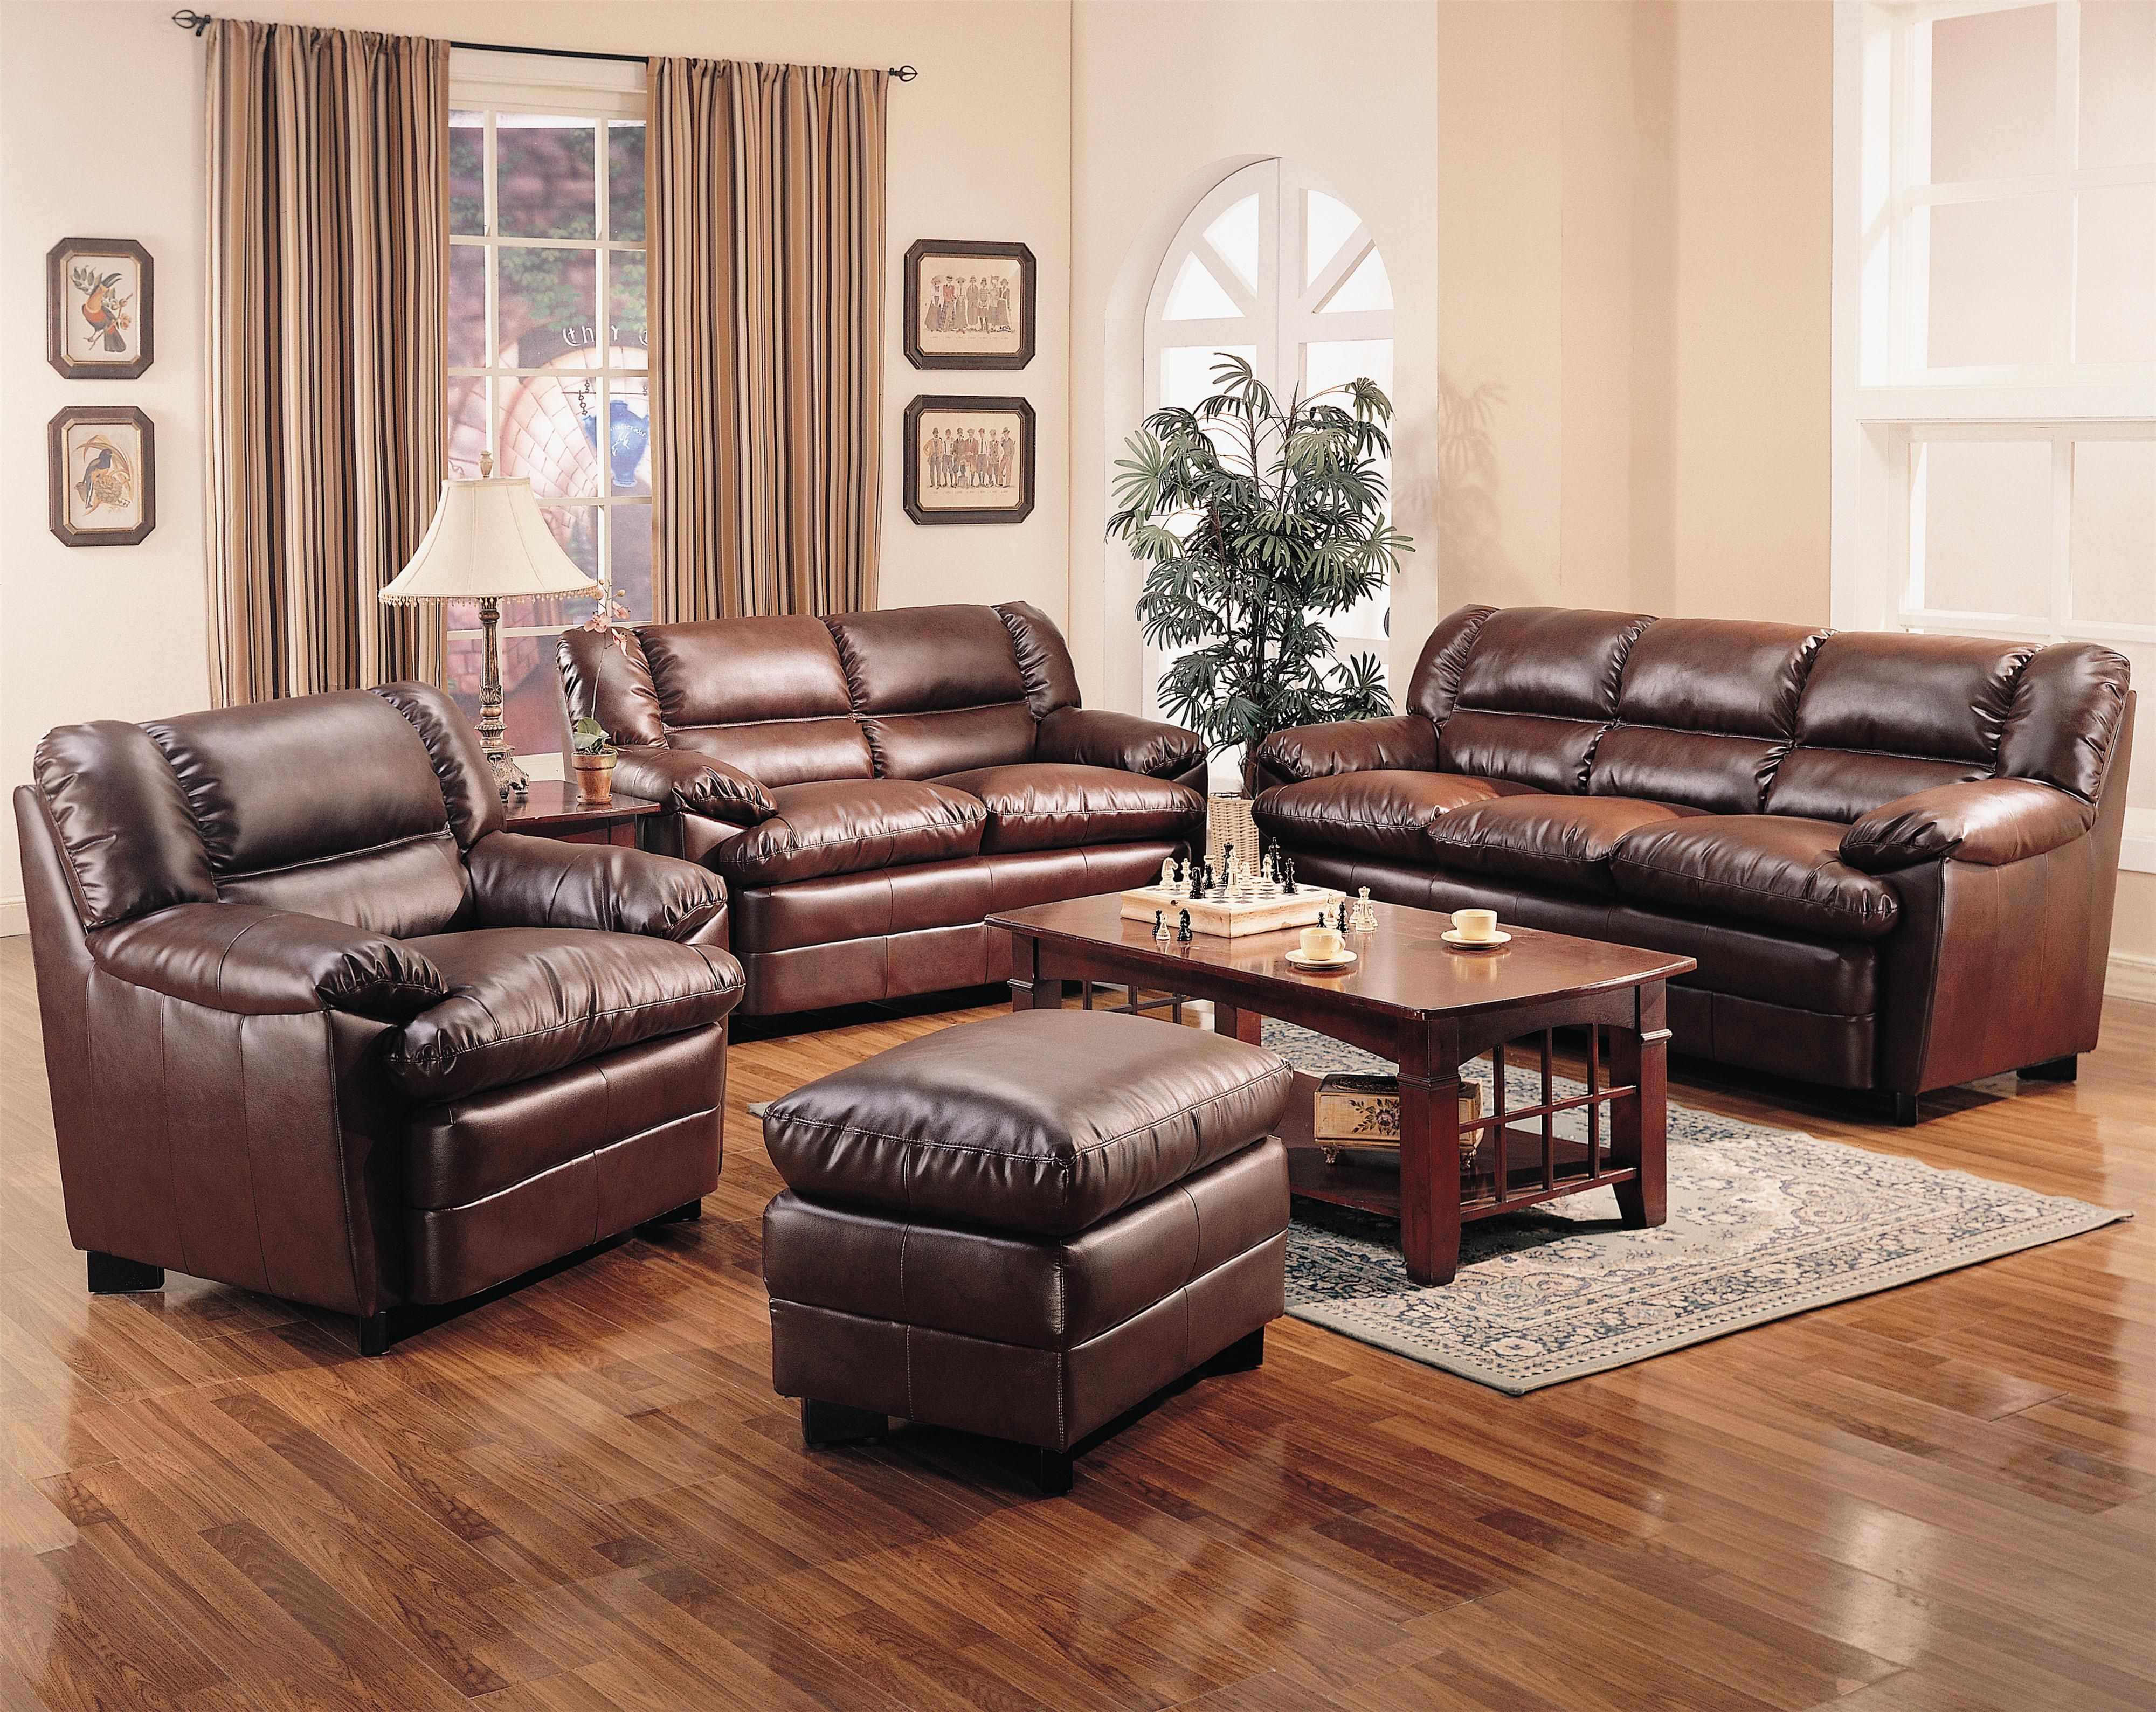 501911set Harper Overstuffed Leather Sofa With Pillow Arms Buy